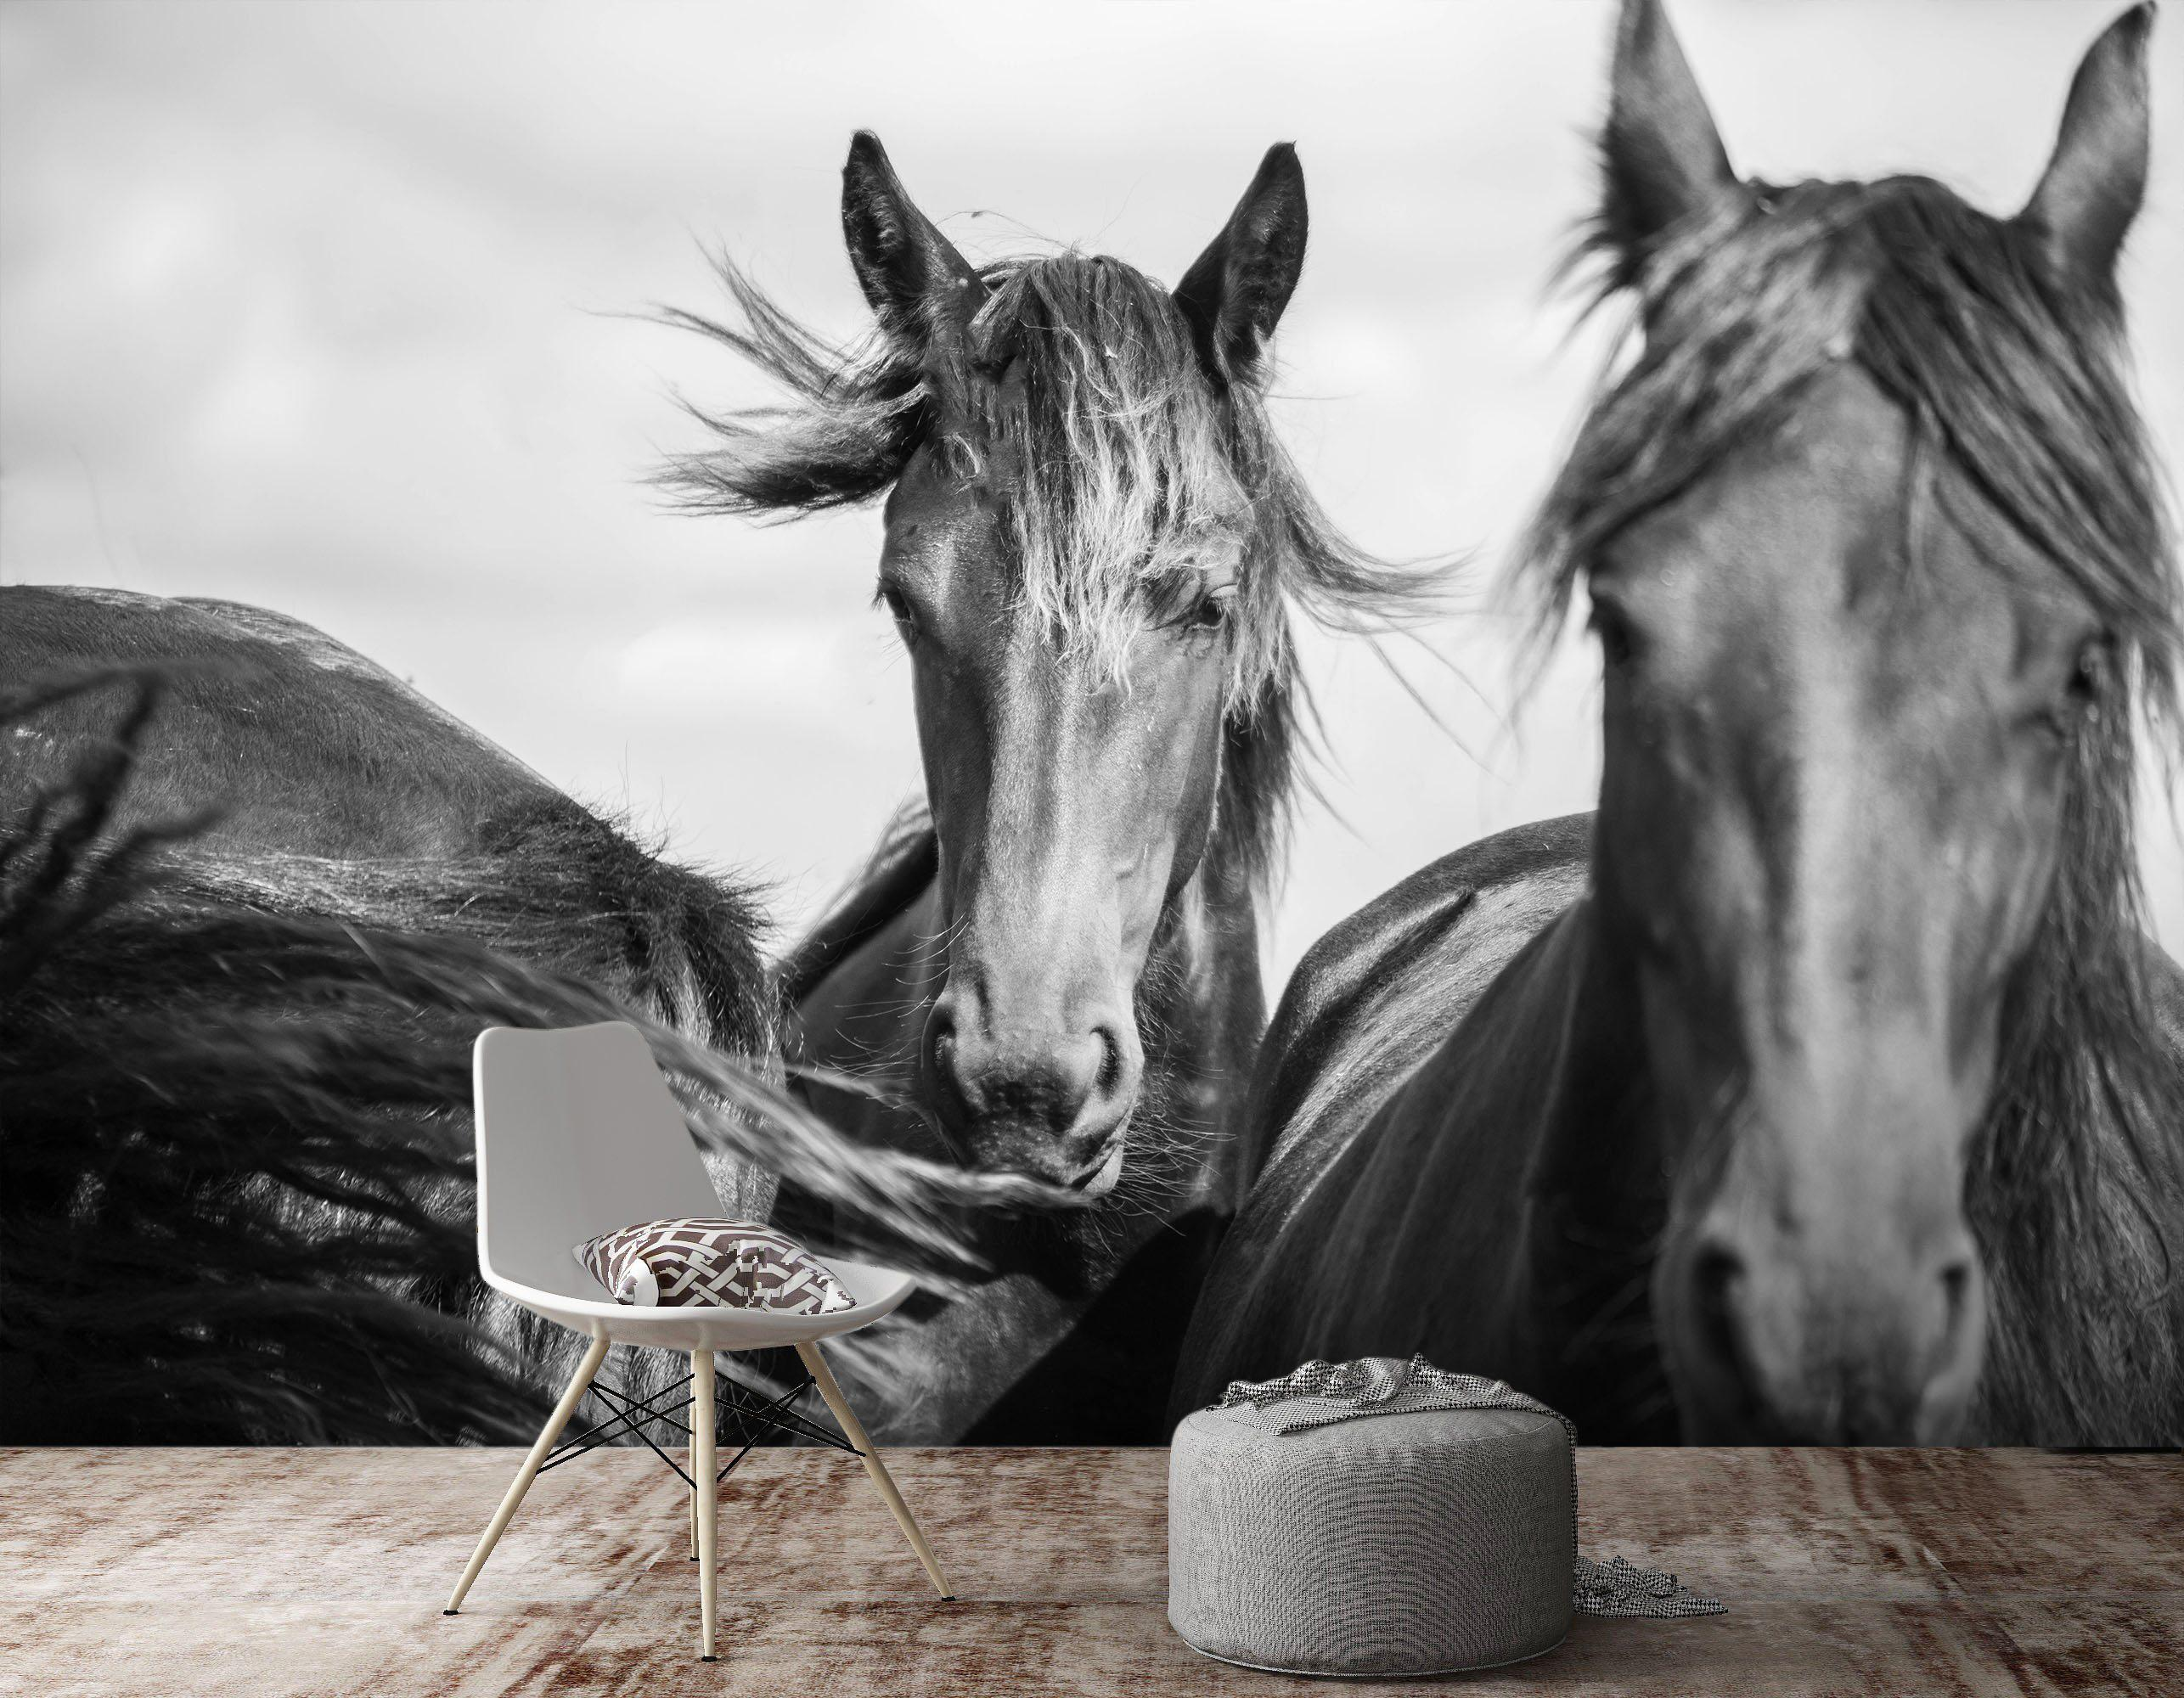 3d Home Wallpaper Black And White Grey Horse 671 Self Adhesive Vinyl Xxxl 416cm X 254cm Wxh 164 X100 Matt Blatt